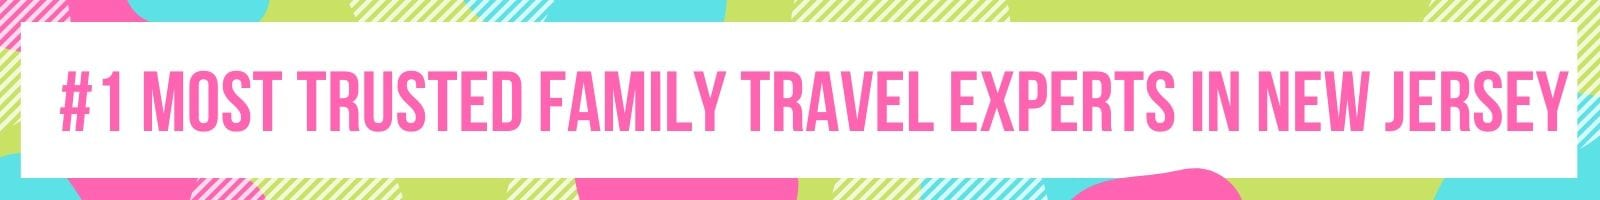 #1 MOST TRUSTED FAMILY TRAVEL EXPERTS IN NEW JERSEY - OLEGANA TRAVEL BOUTIQUE